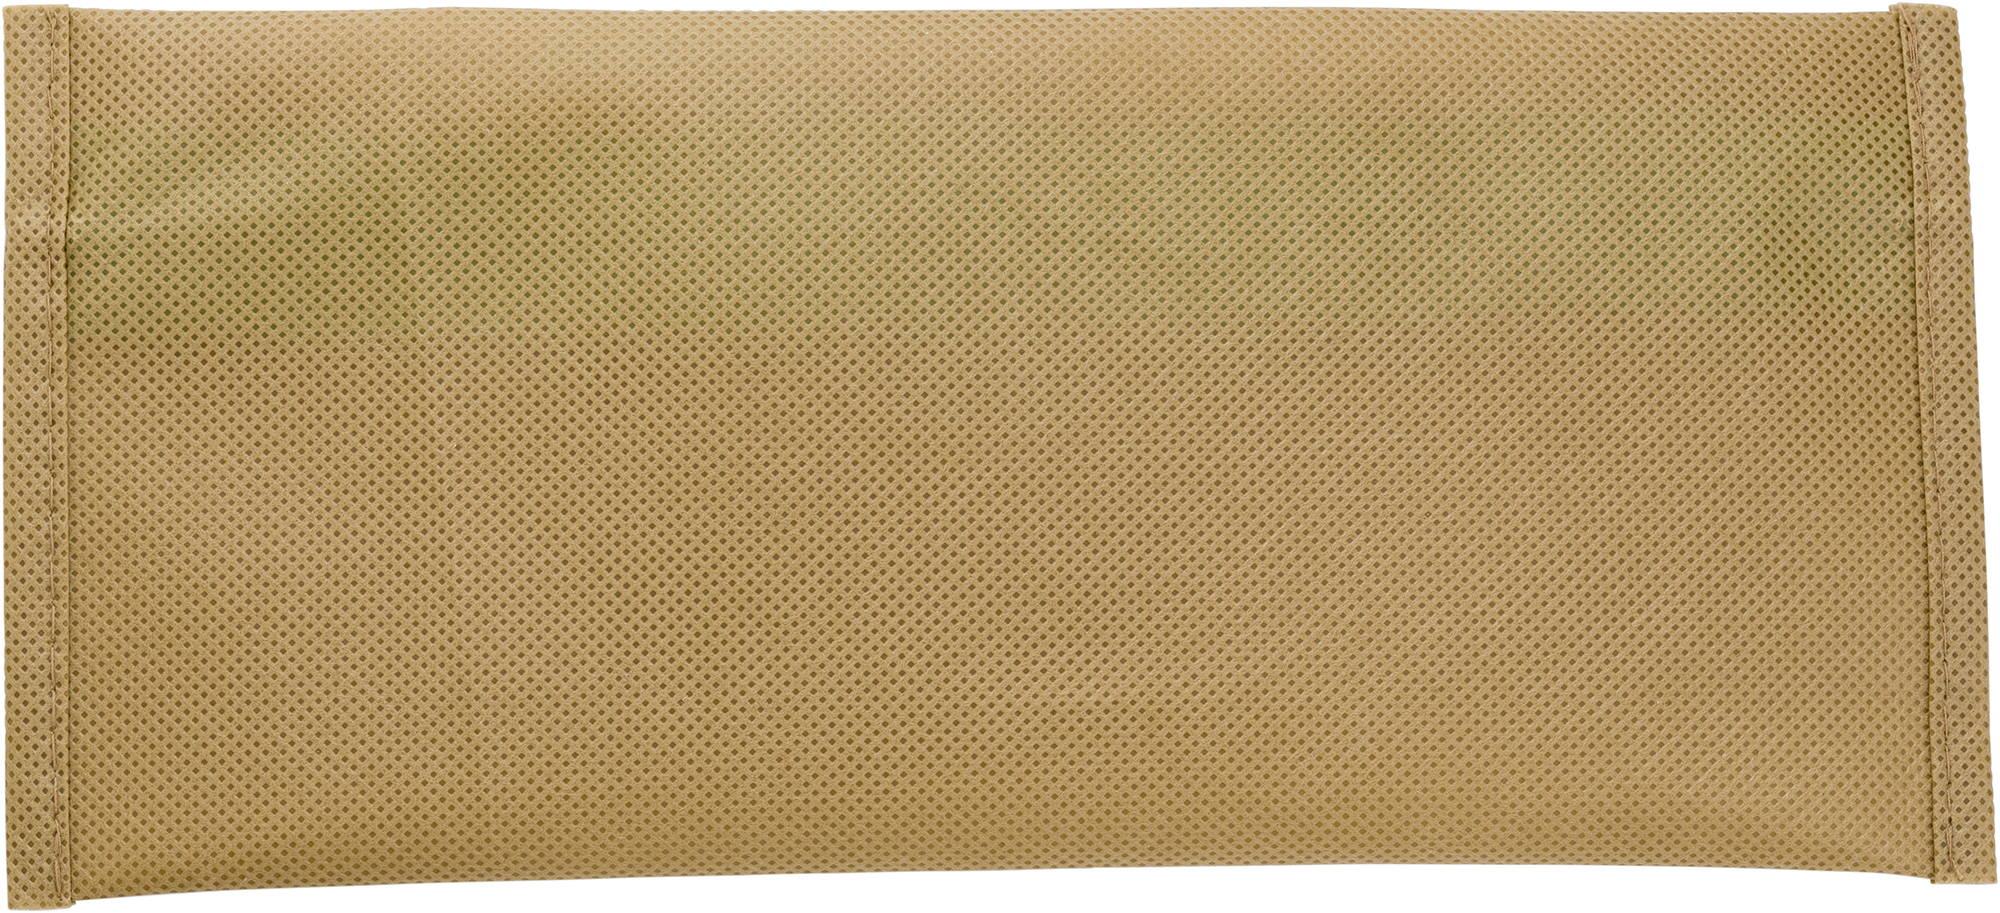 Promotional ECO Non-woven pencil case with contents.